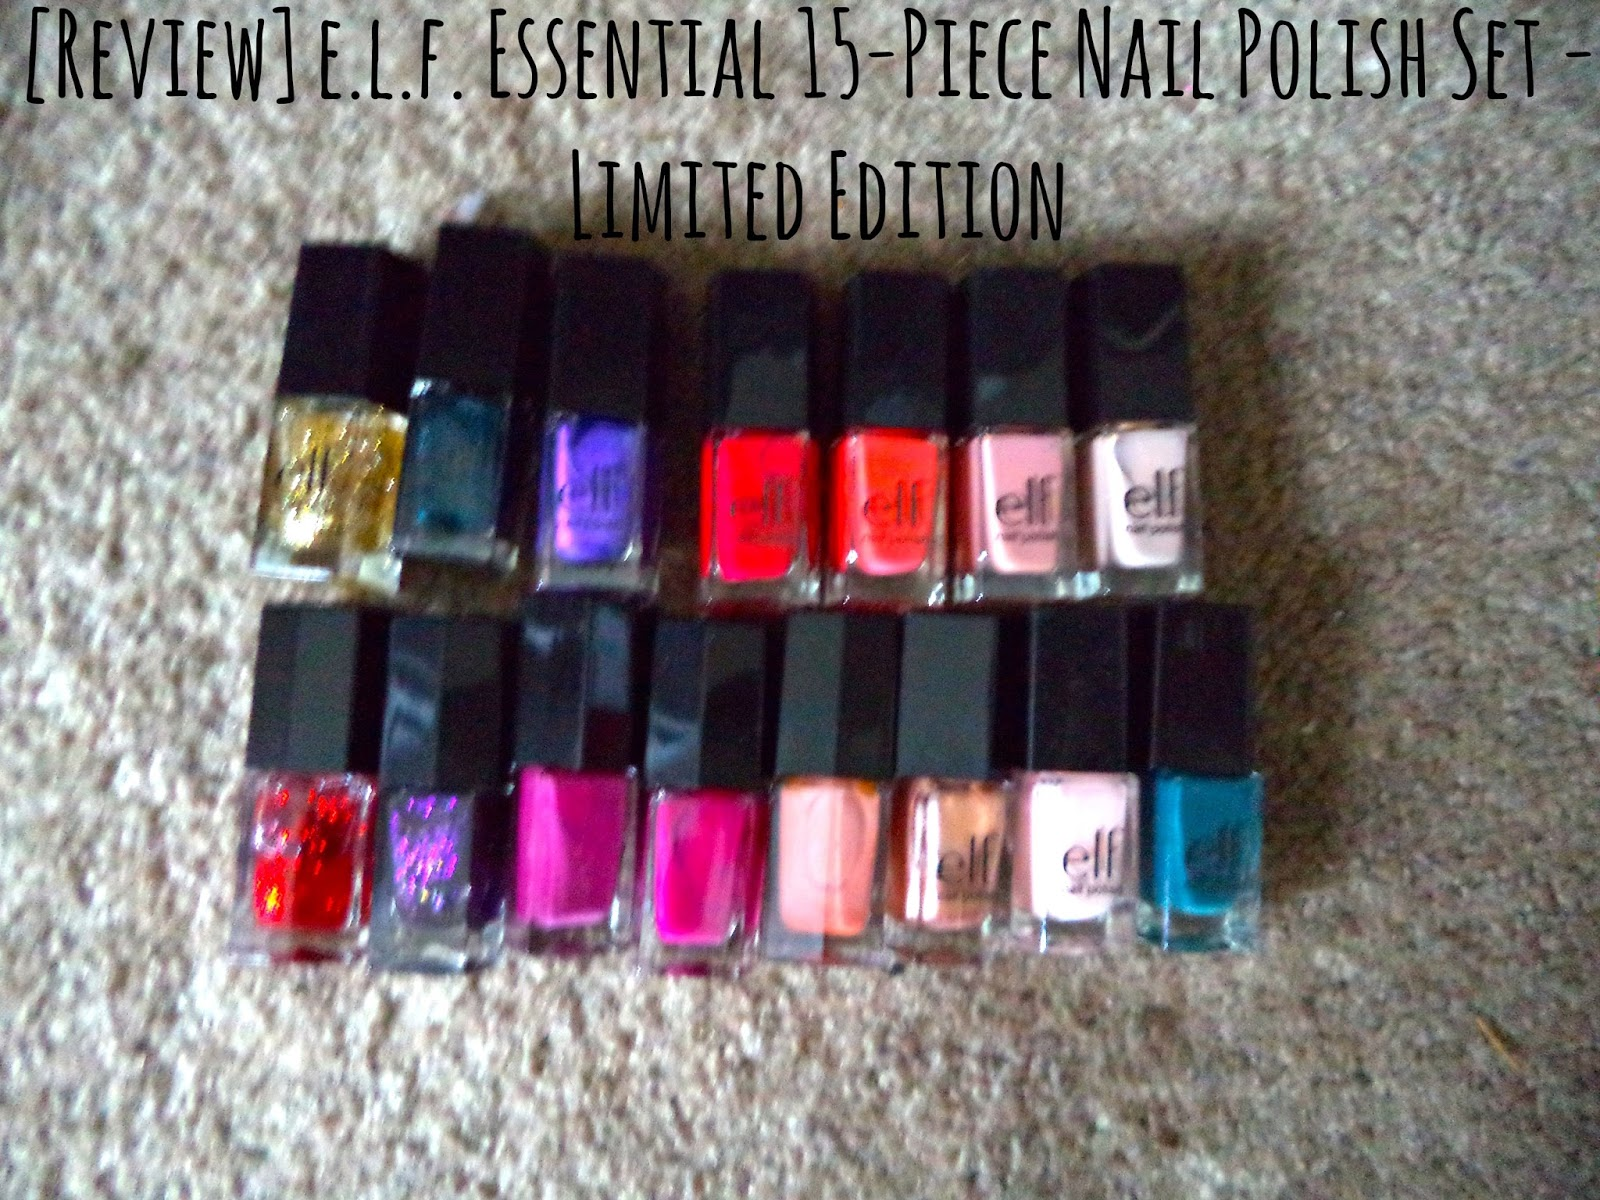 Review e.l.f. Essential 15 Piece Nail Polish Set Limited Edition